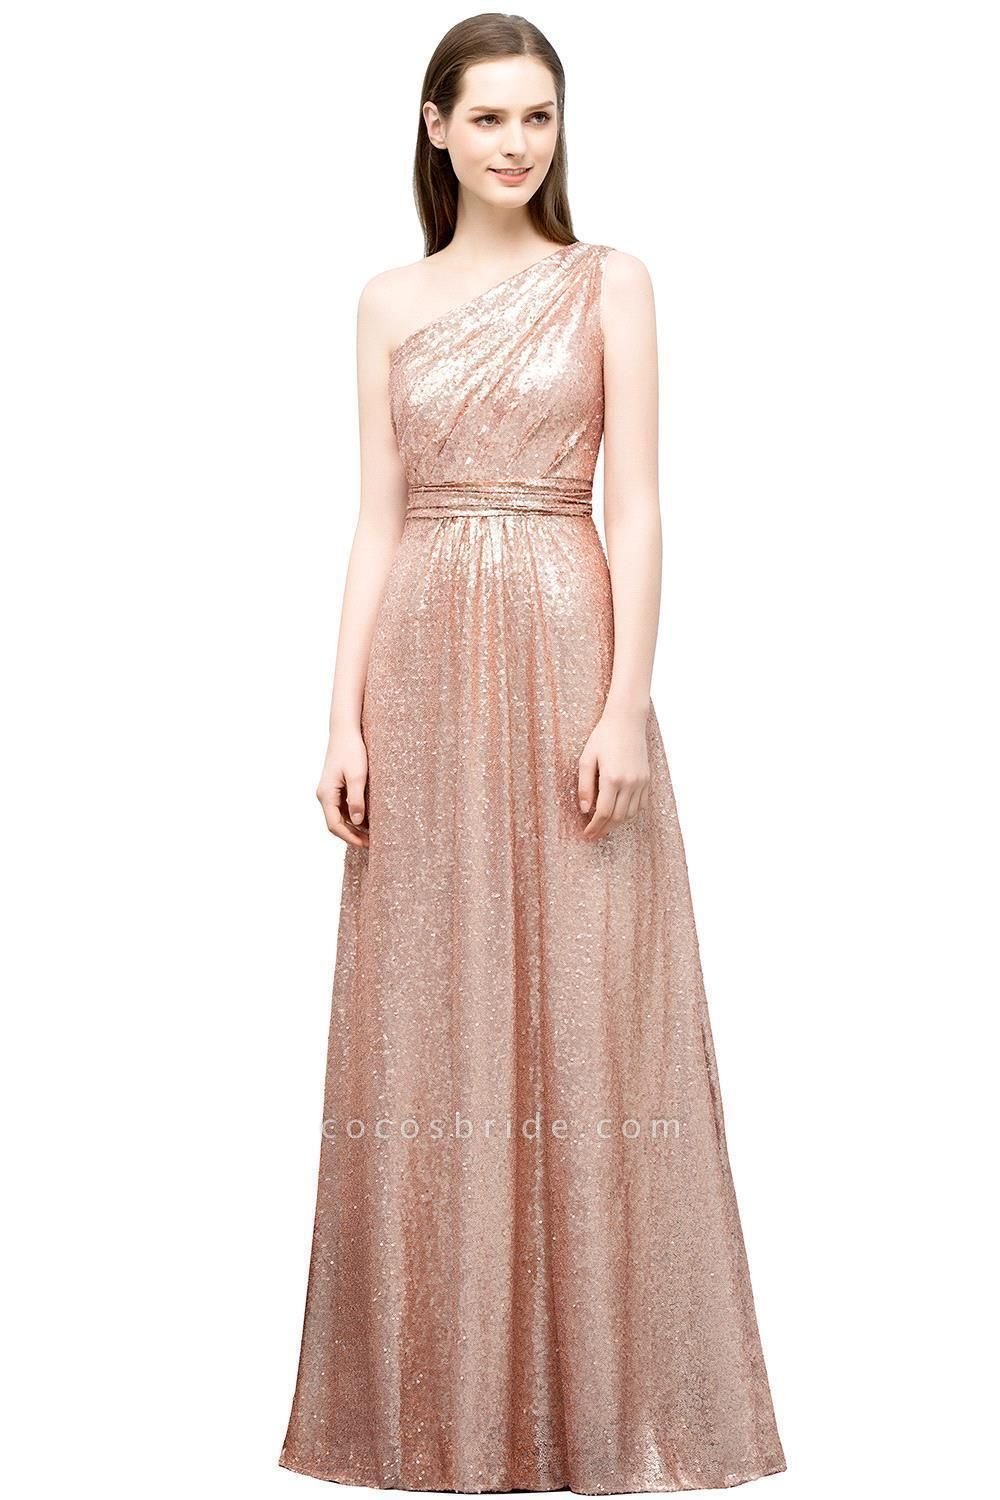 Awesome One Shoulder Sequined A-line Evening Dress